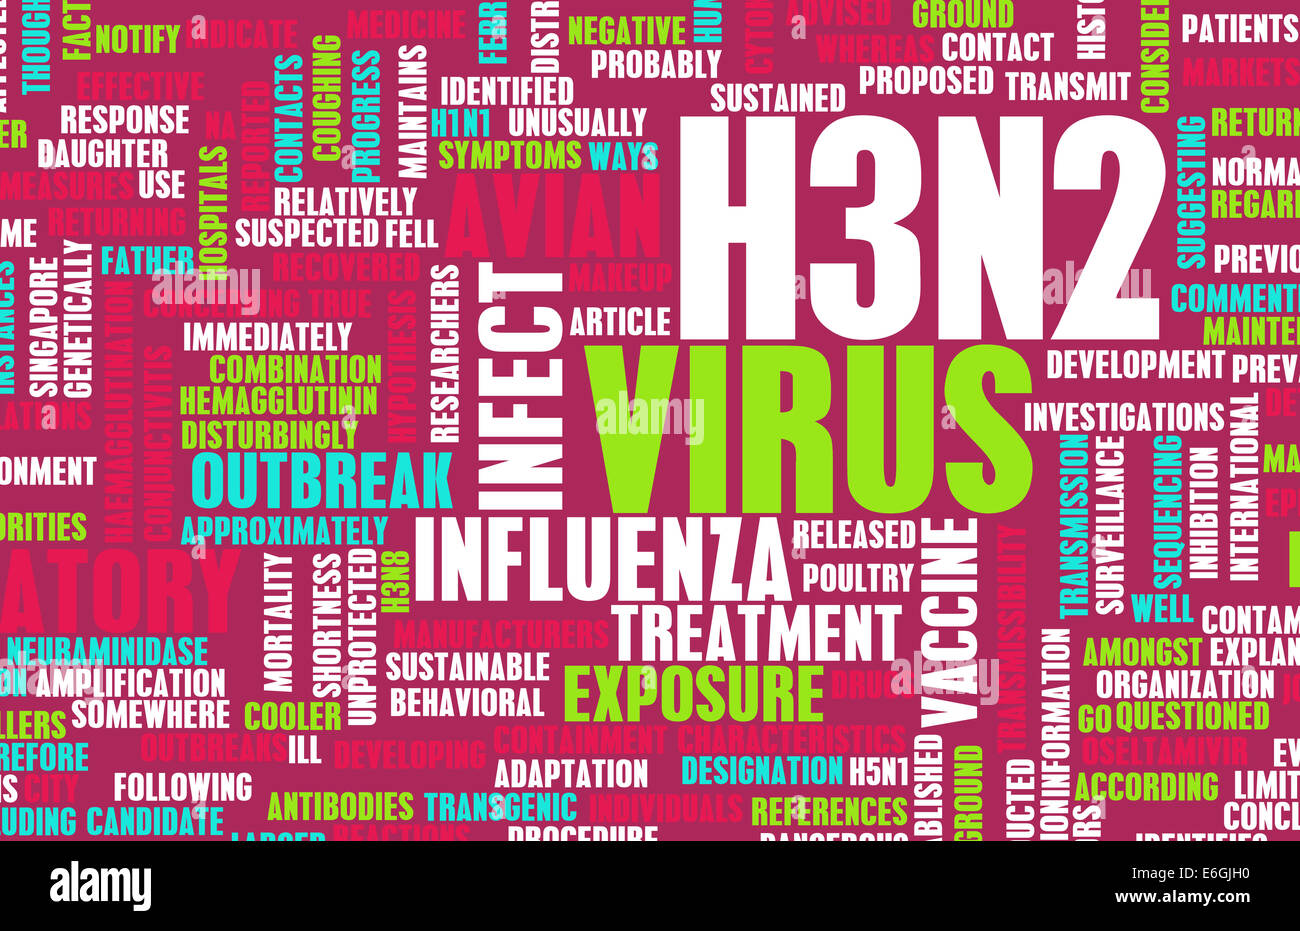 H3N2 Concept as a Medical Research Topic - Stock Image